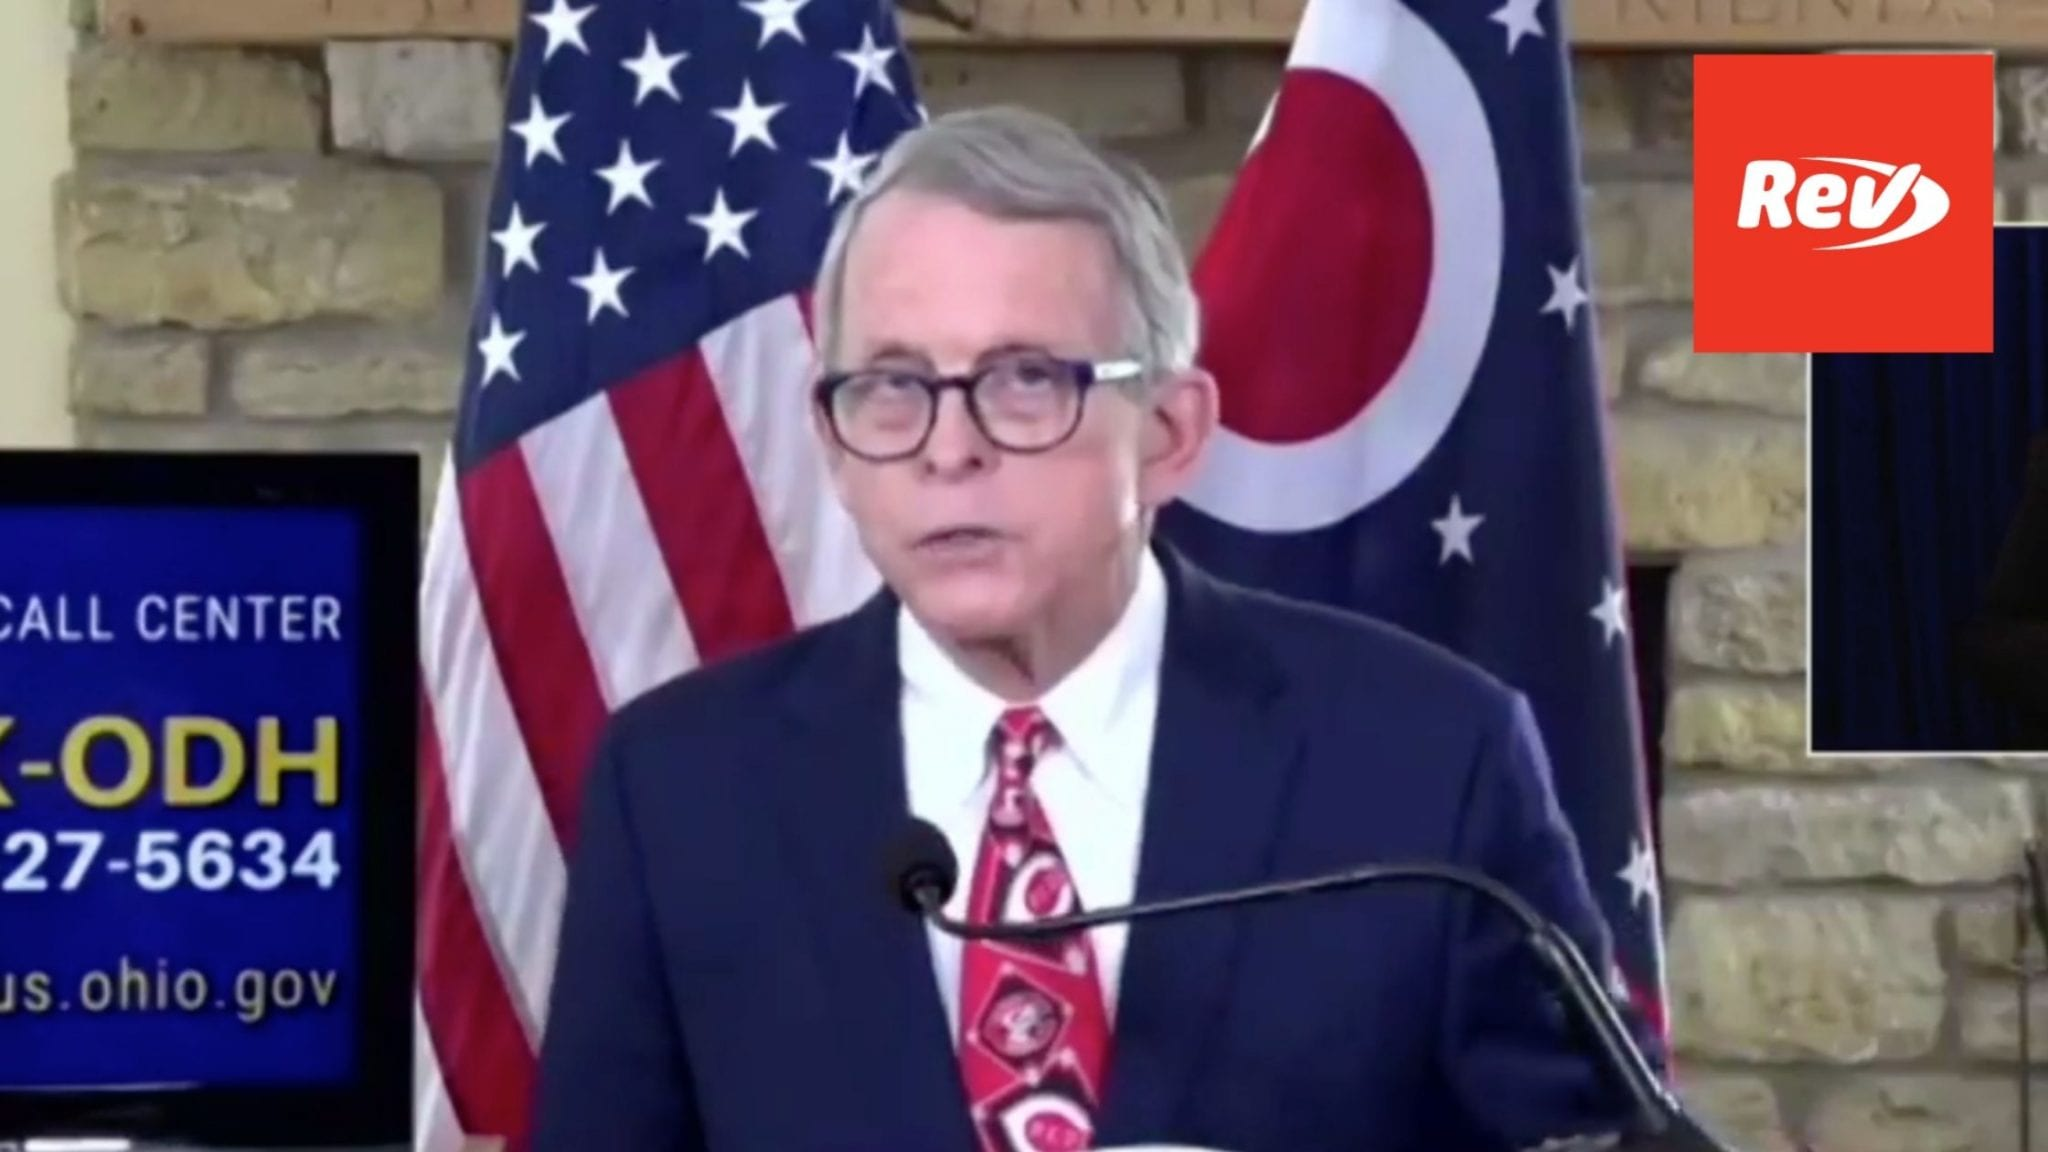 Ohio Gov. Mike DeWine COVID-19 Press Conference Transcript February 18